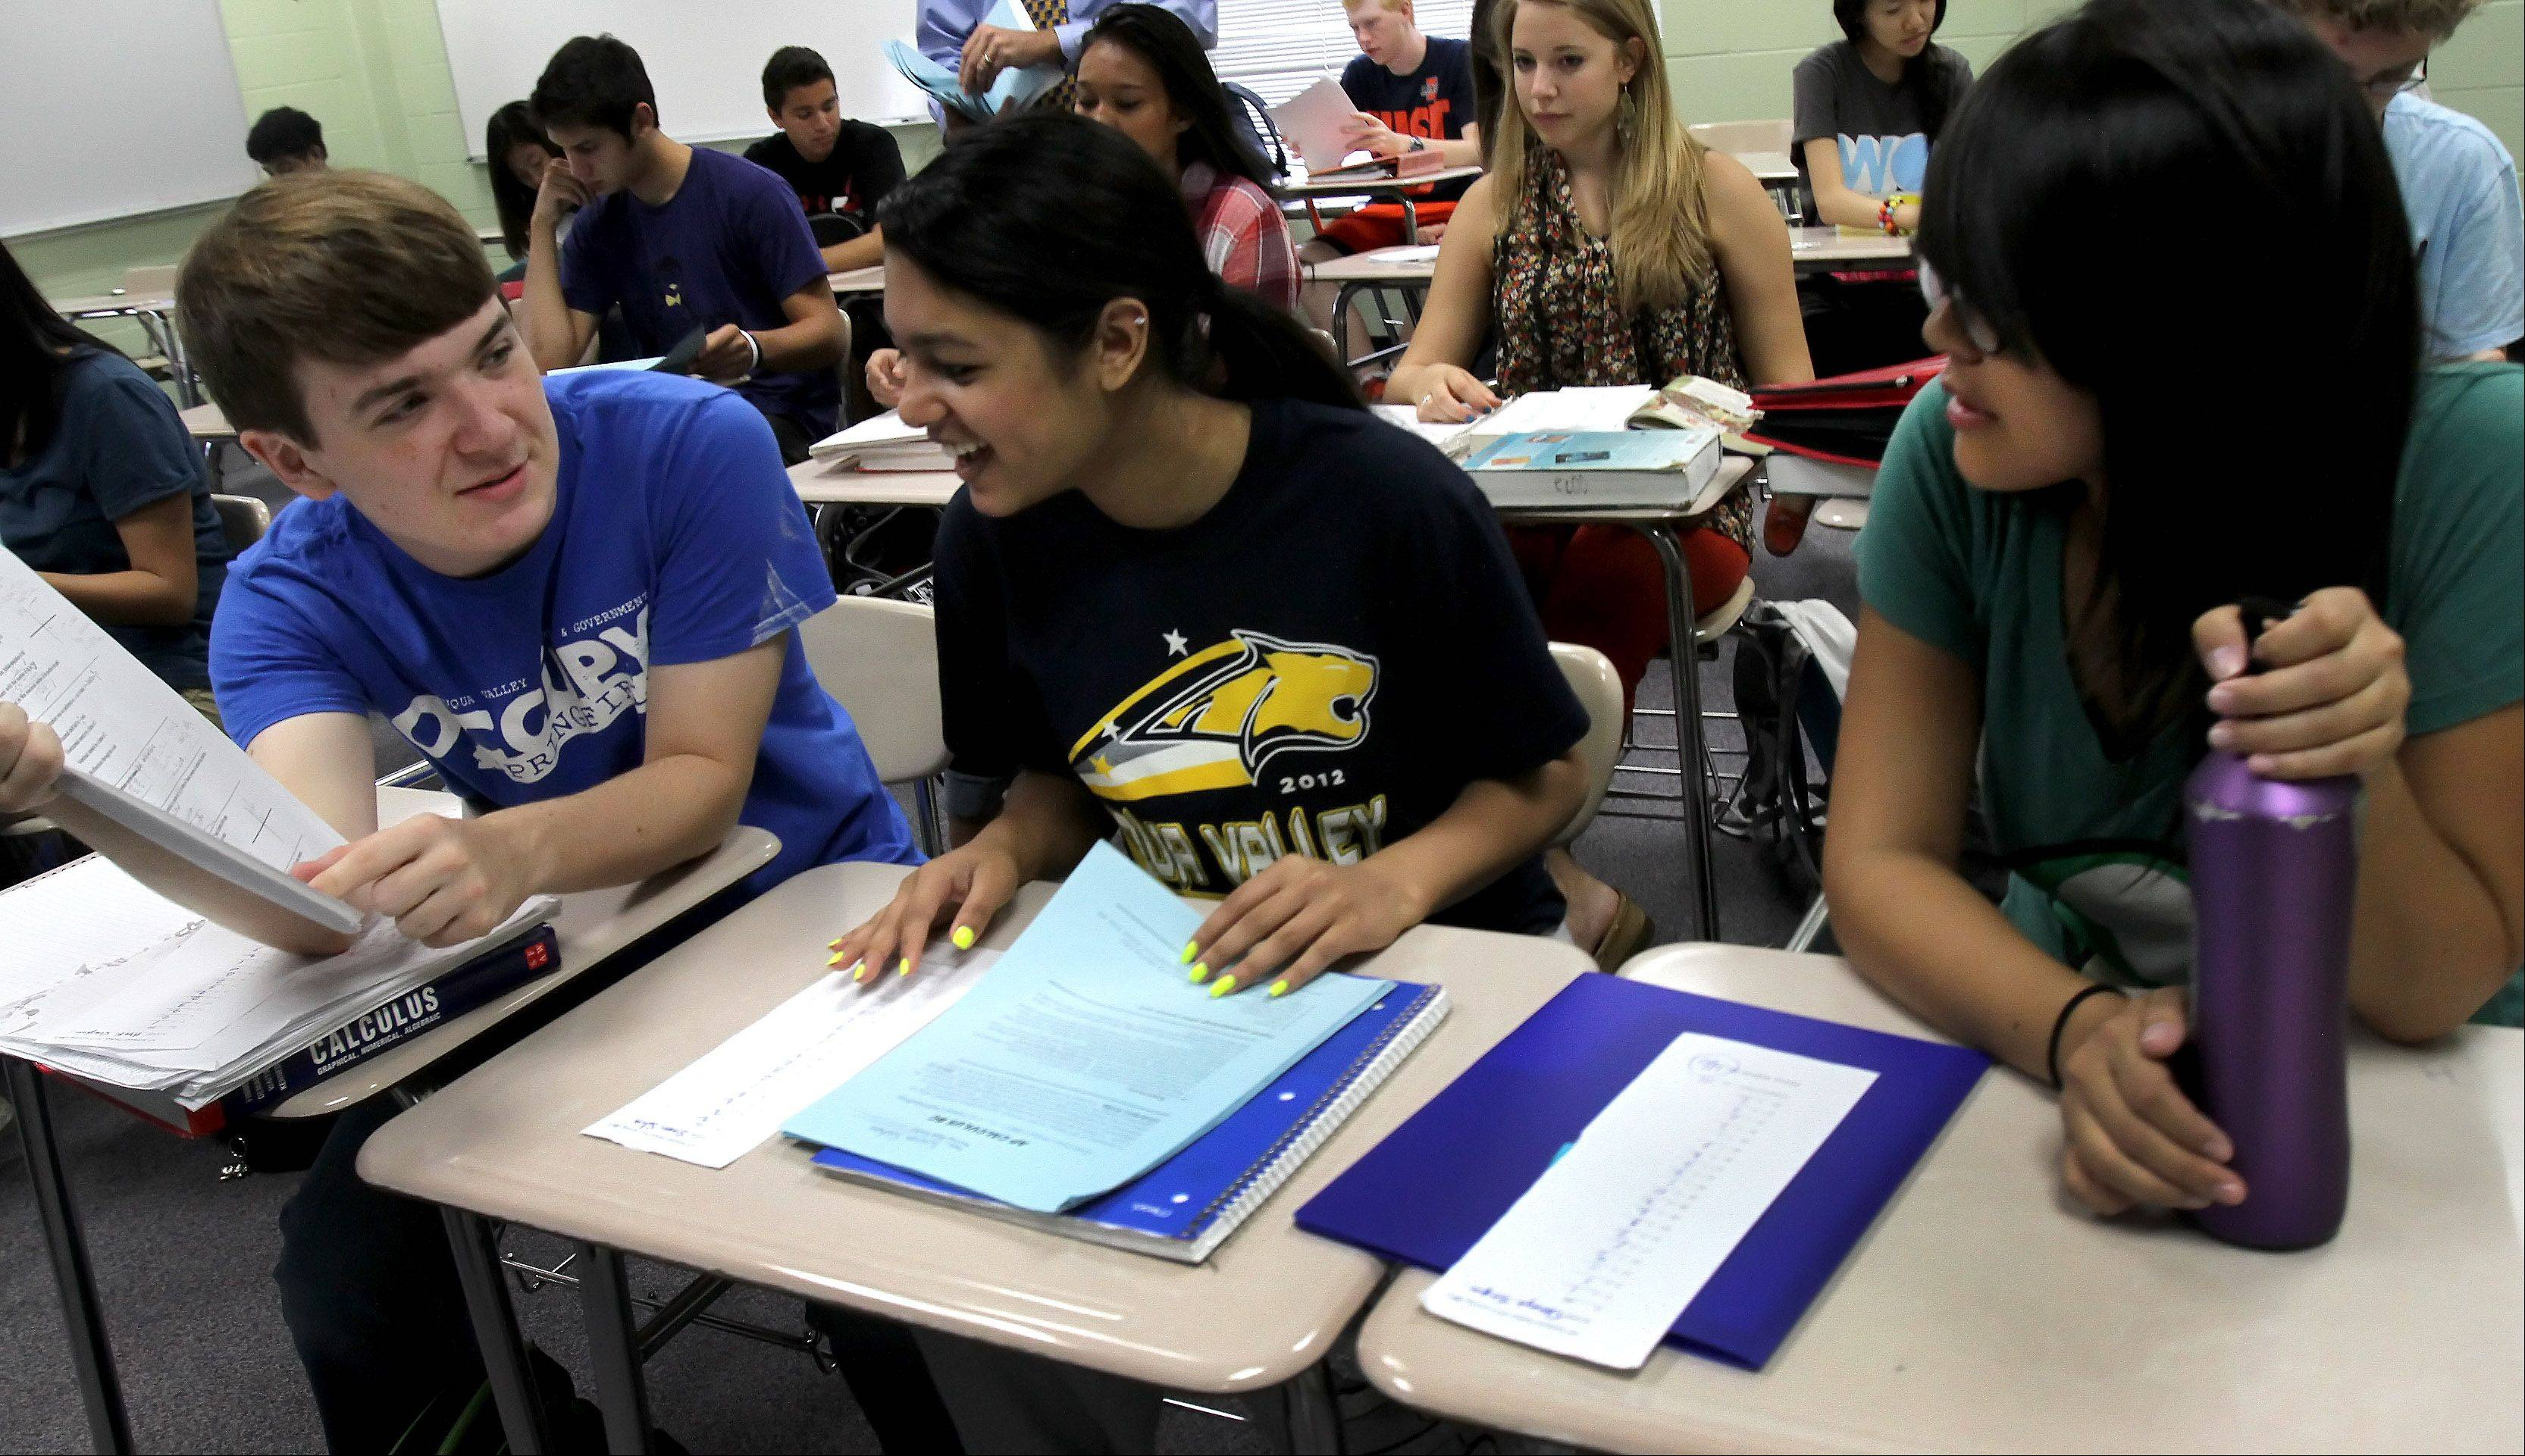 Mark Gaughan, left, a senior, Simron Sahoo, a junior, and Danaya Siripun, a senior, look over test results in an Advanced Placement calculus class at Neuqua Valley High School in Naperville.